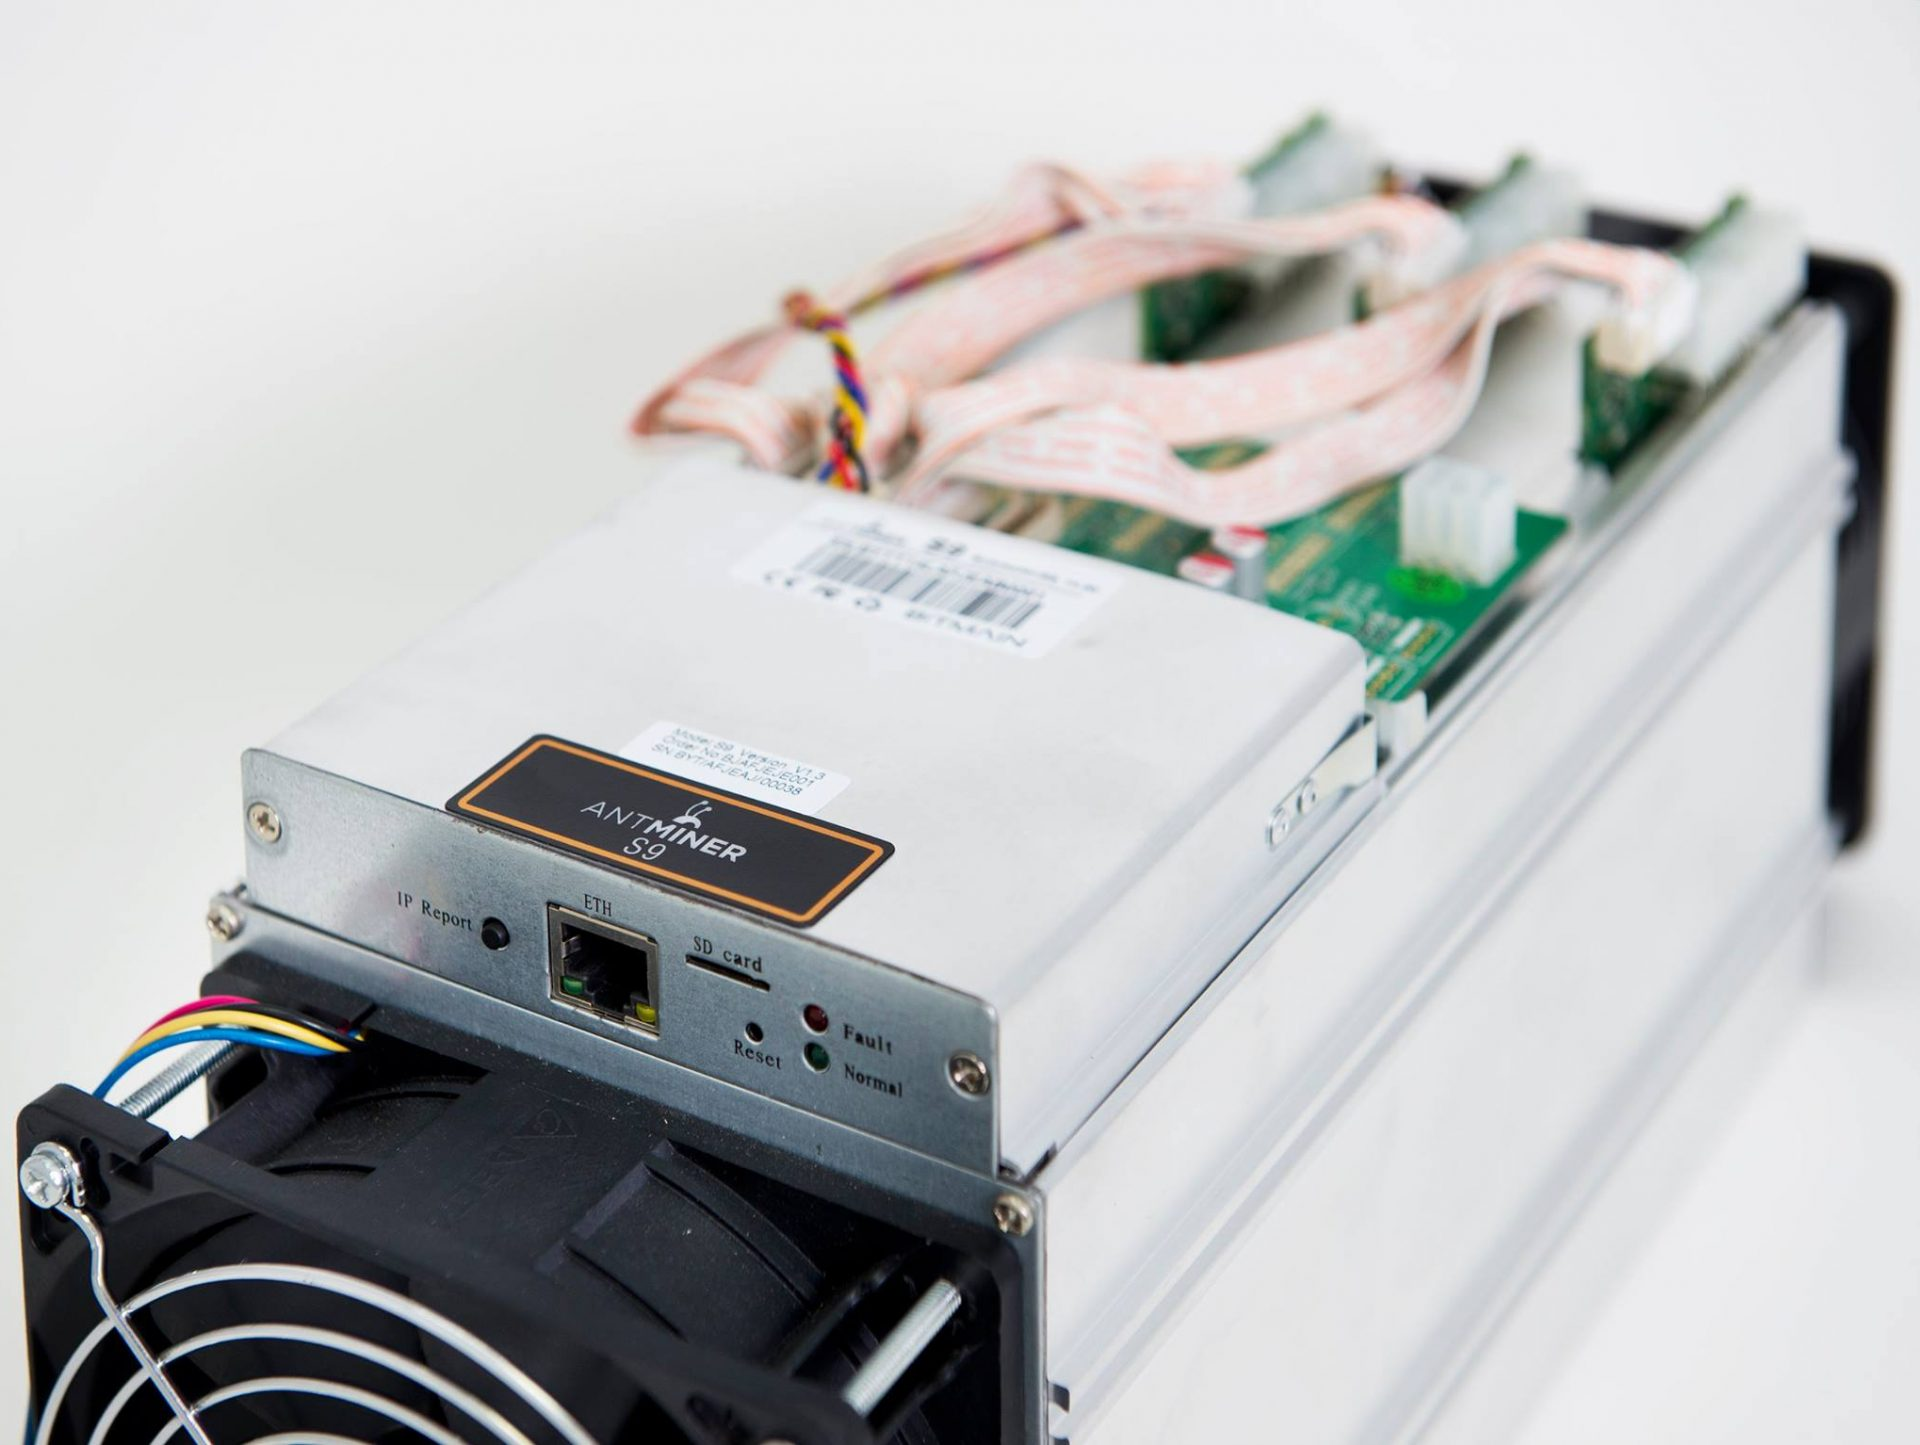 Cryptocurrency Mining Giant Bitmain Files for IPO in Hong Kong